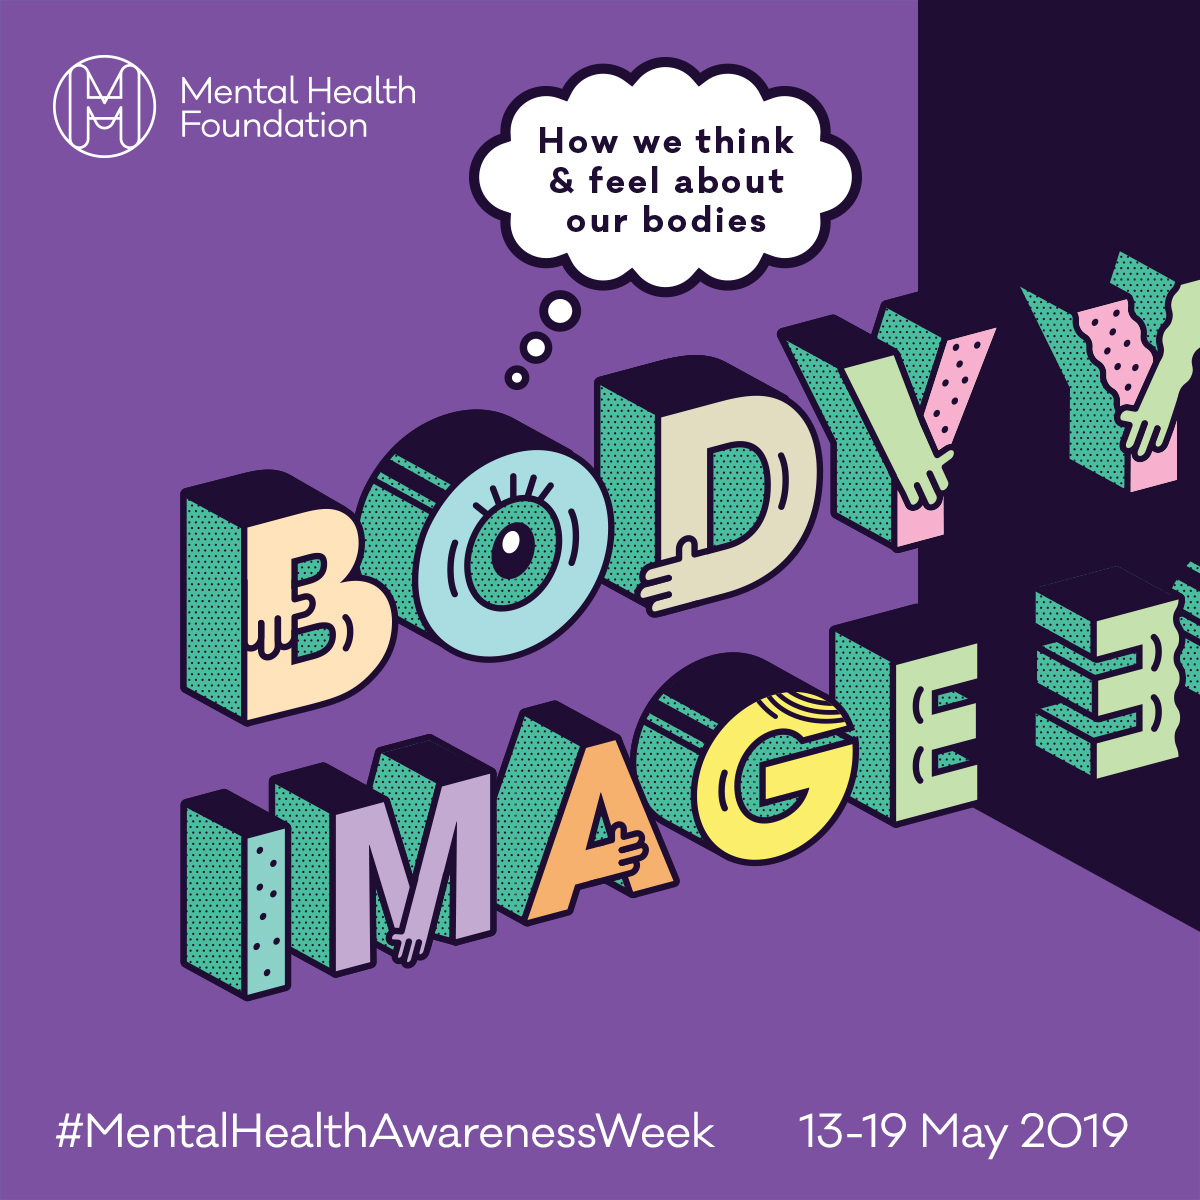 Mental Health Awareness Week Body Image